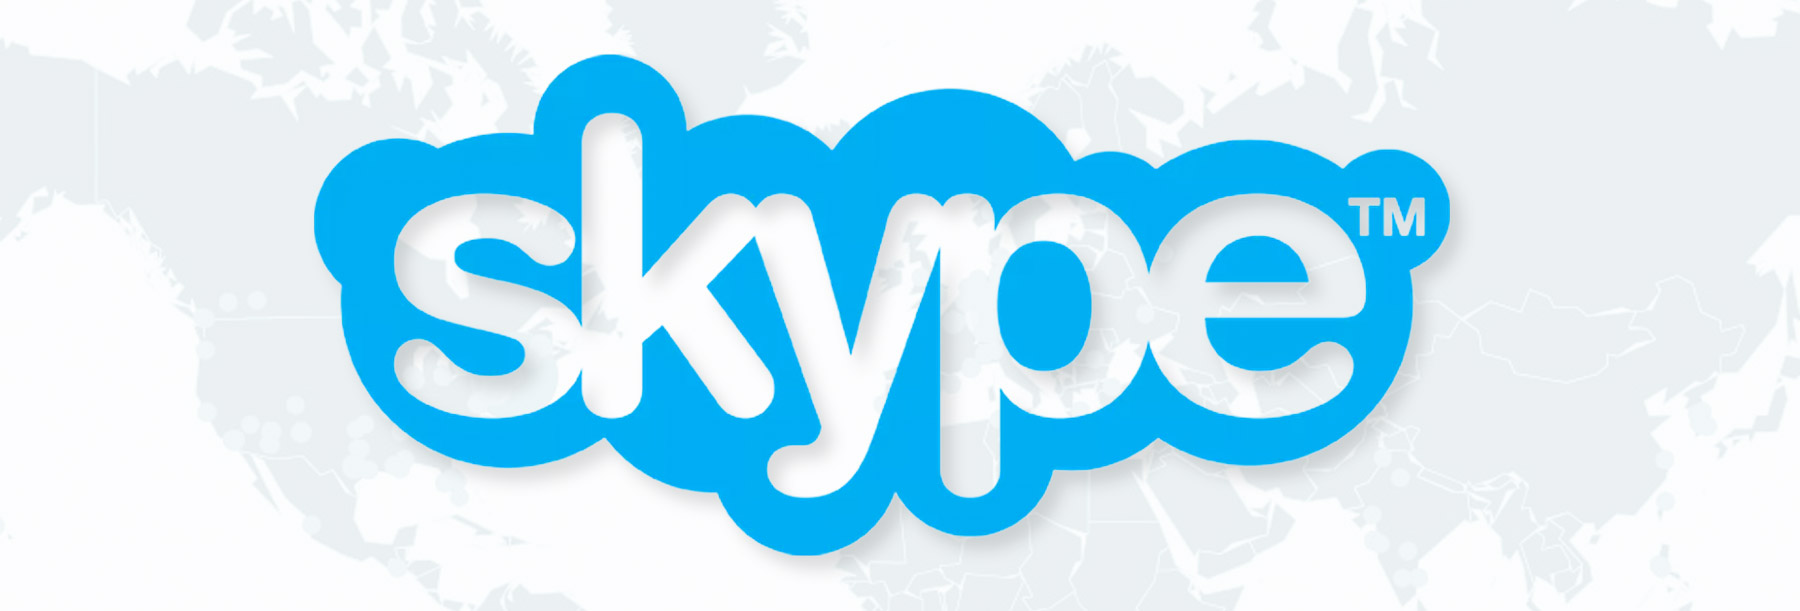 Working on Skype